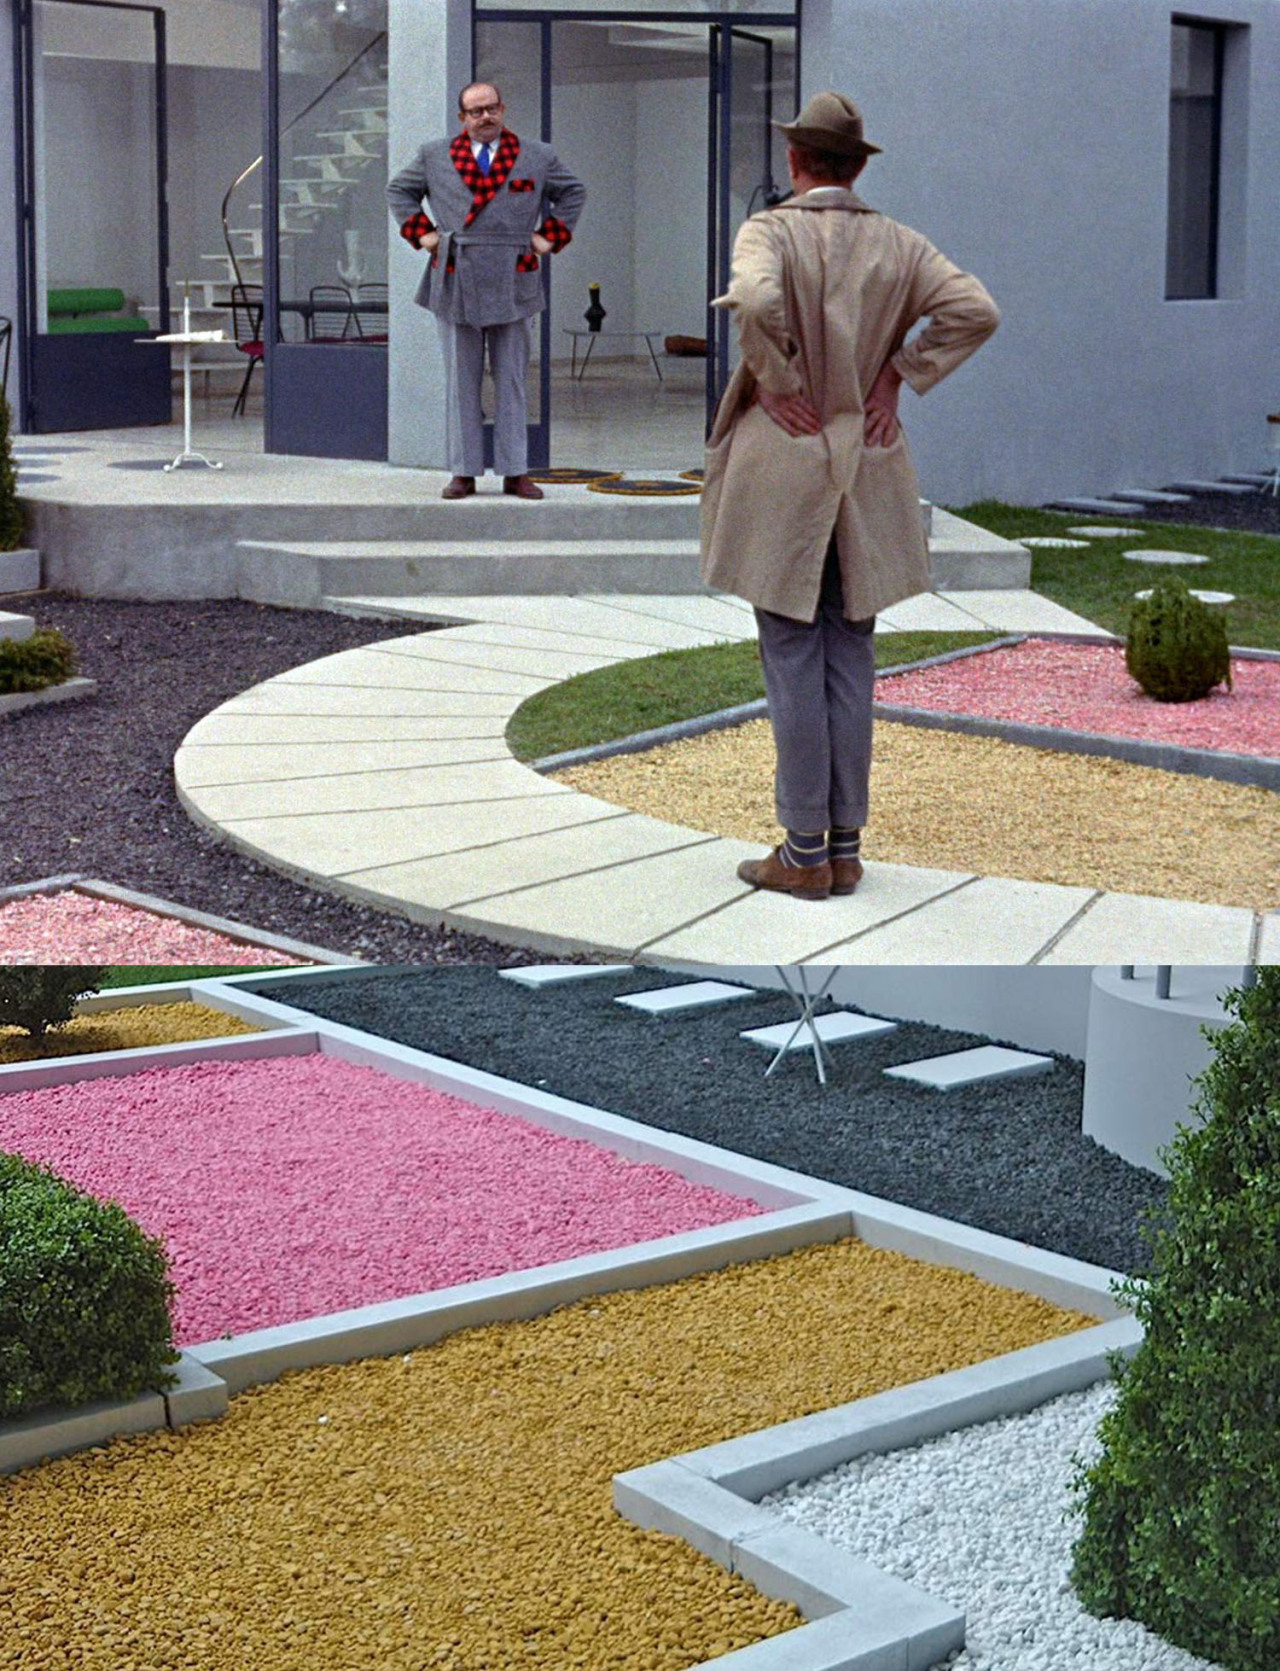 speakingparts:  MON ONCLE [1958, Jacques Tati]